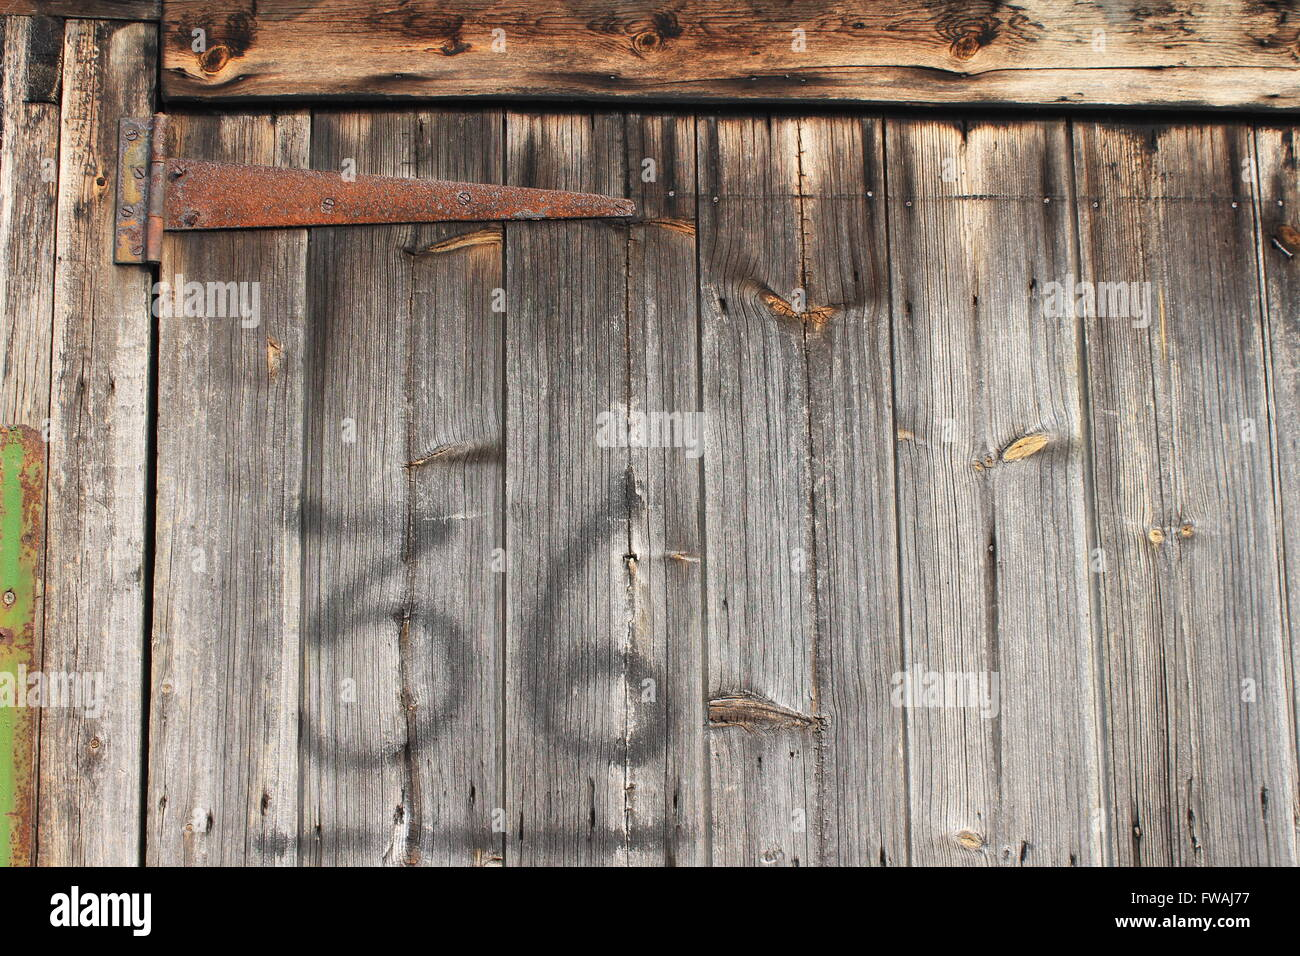 36; number 36 sprayed on to old wooden fronted garage door with a large rusty hinge - Stock Image